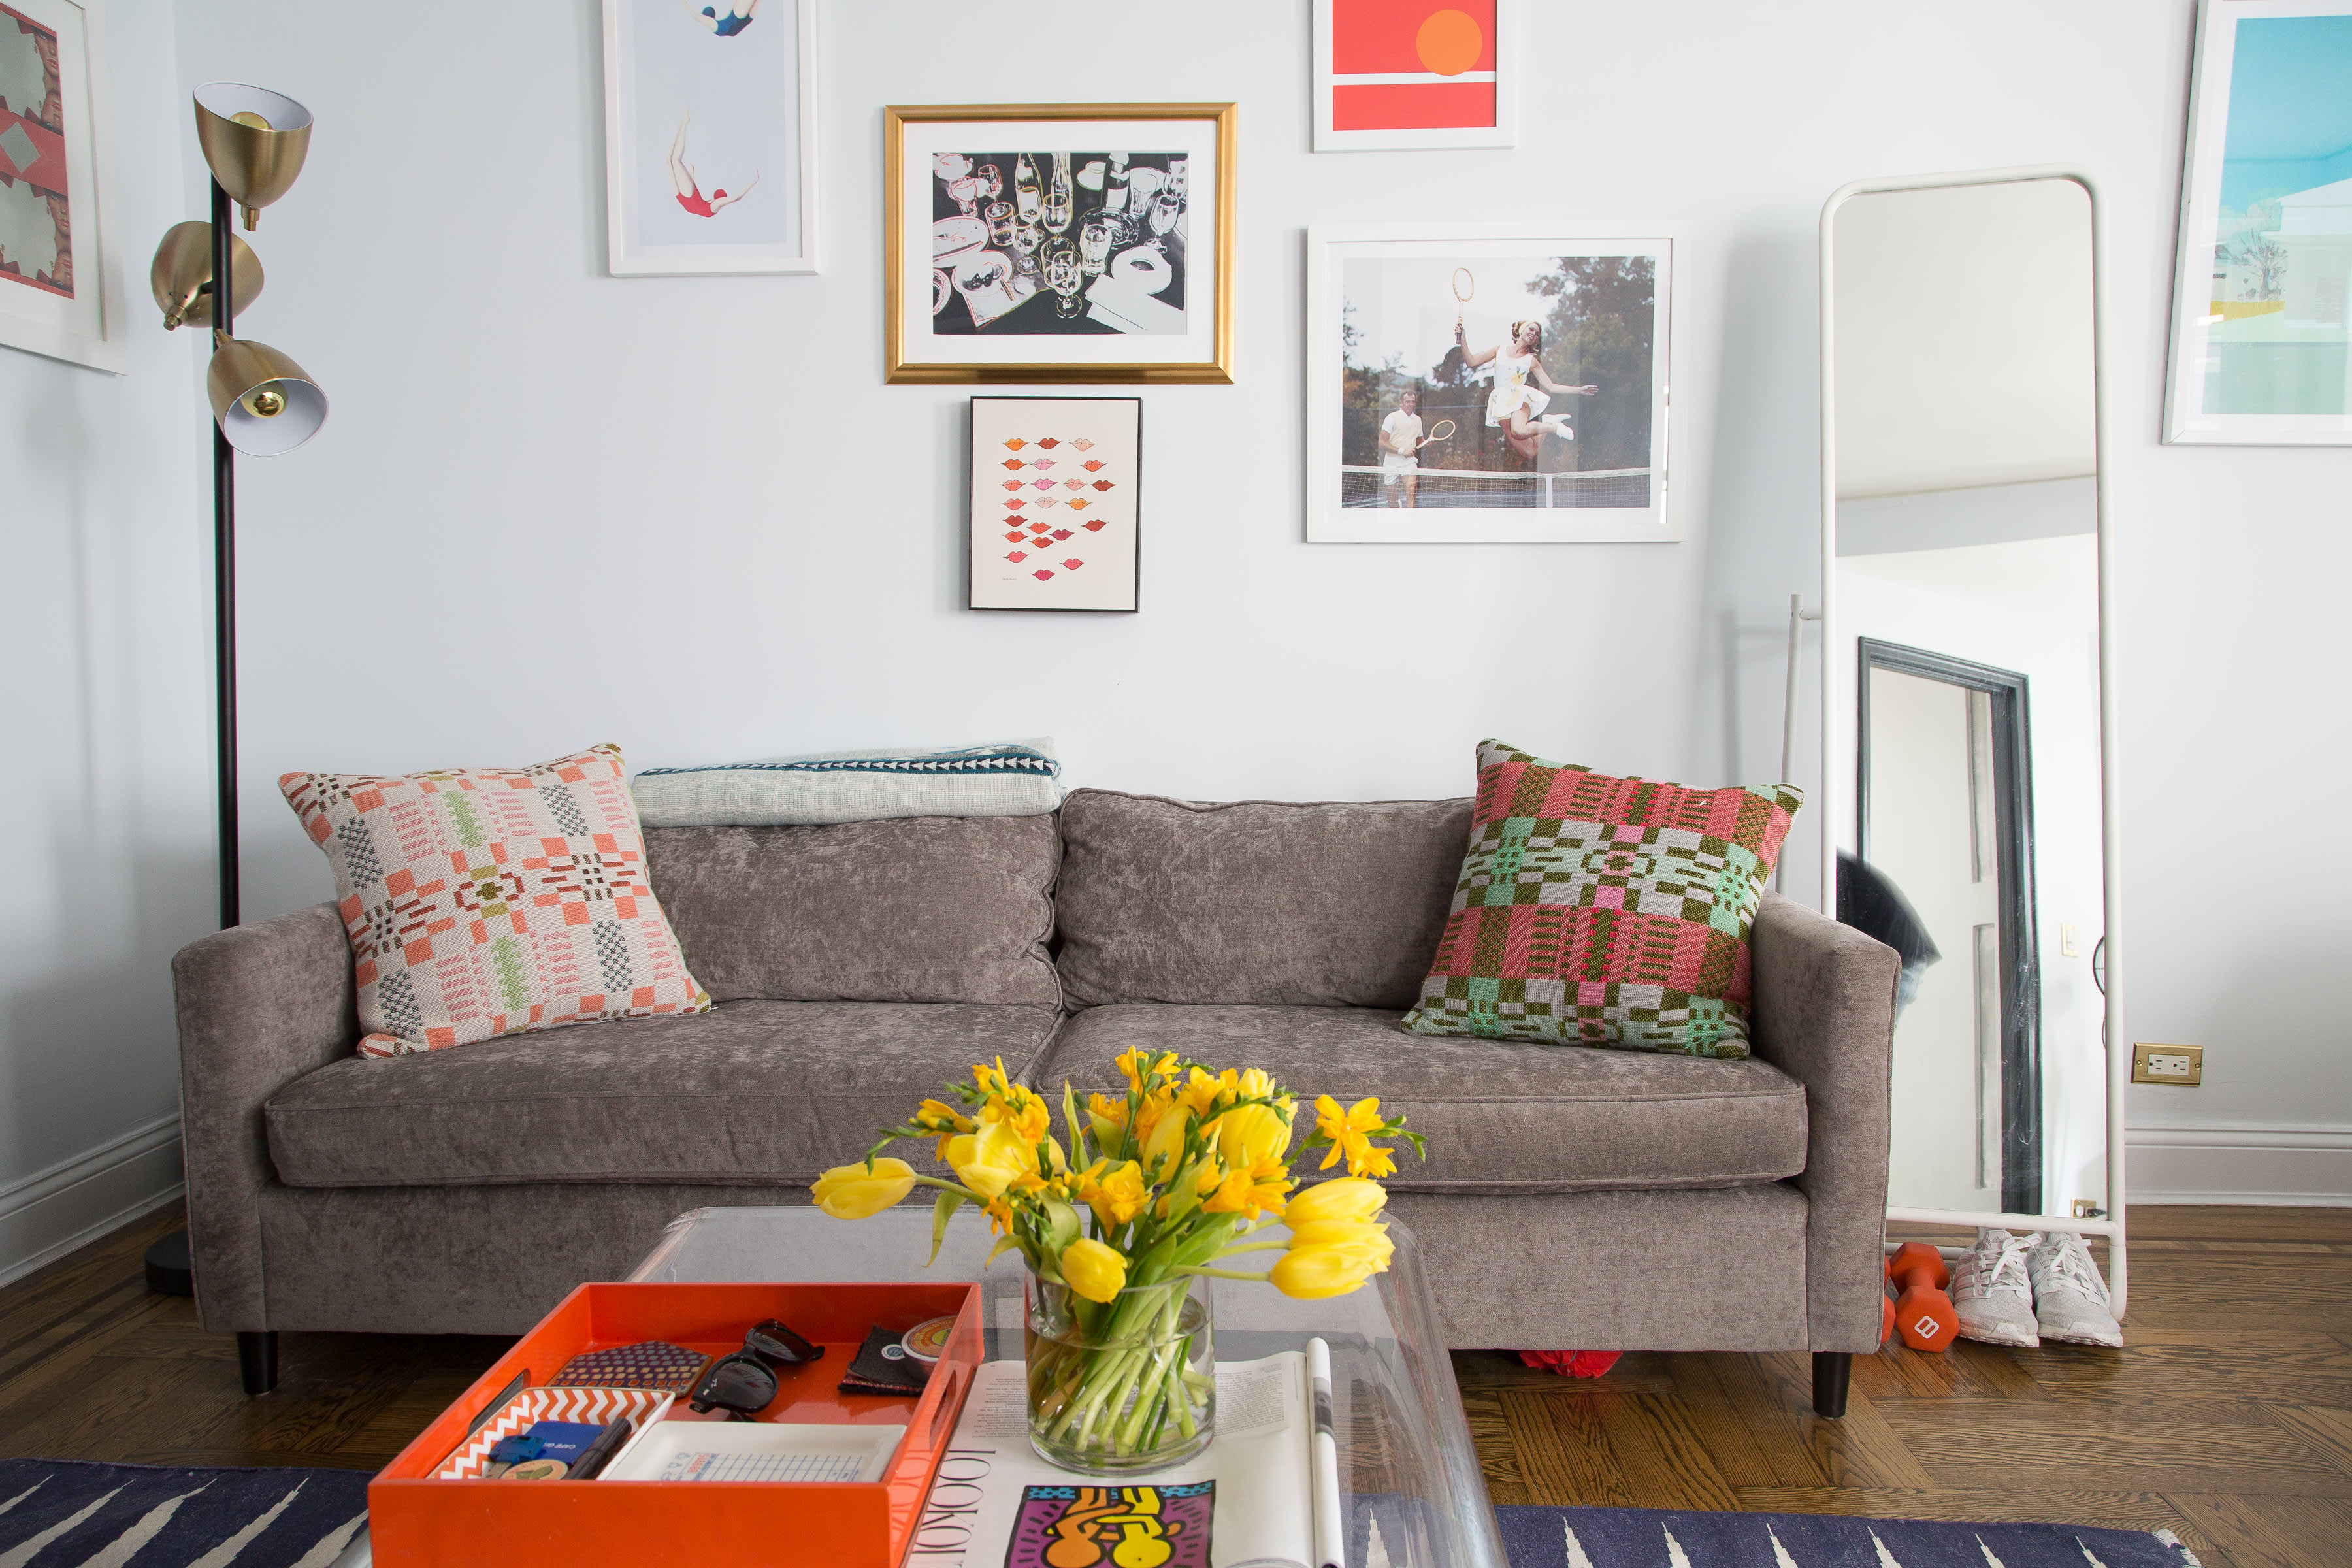 House Tour: A Colorful 450 Square Foot NYC Studio ... on 1600 square foot open floor plan, 450 square feet banquet room, 500 sf apartments floor plan, ikea 400 sq ft floor plan, 480 square foot floor plan, 450 square feet office, 1 bedroom 850 sq ft floor plan, 450 square foot apartment, 1250 square foot floor plan, 525 square foot apartment floor plan, 576 square foot floor plan, 450 square foot house, desk floor plan, four square floor plan, 450 square feet studio apt, 600 square foot house floor plan, 9 square floor plan, 450 square foot homes, 350 sq ft floor plan,